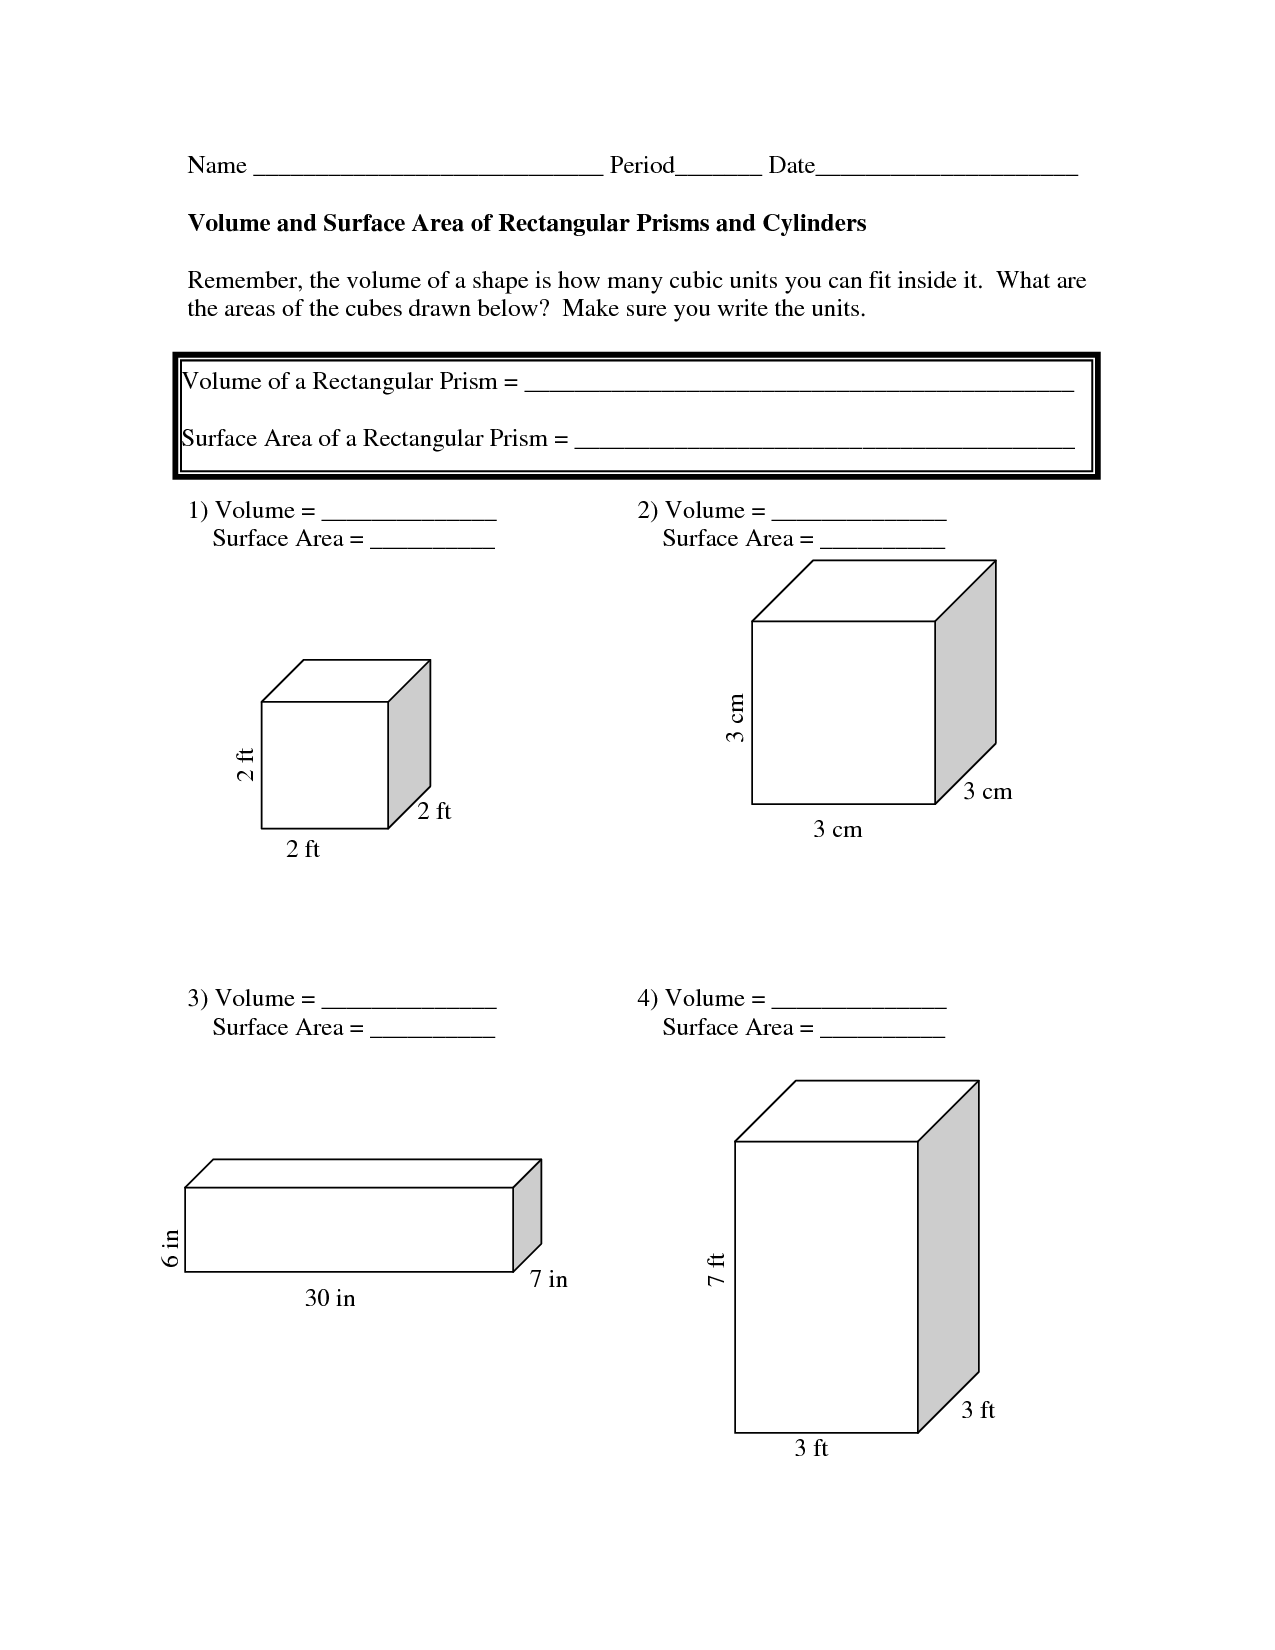 small resolution of volume and surface area worksheets   Volume and Surface Area Worksheets -  DOC   Area worksheets